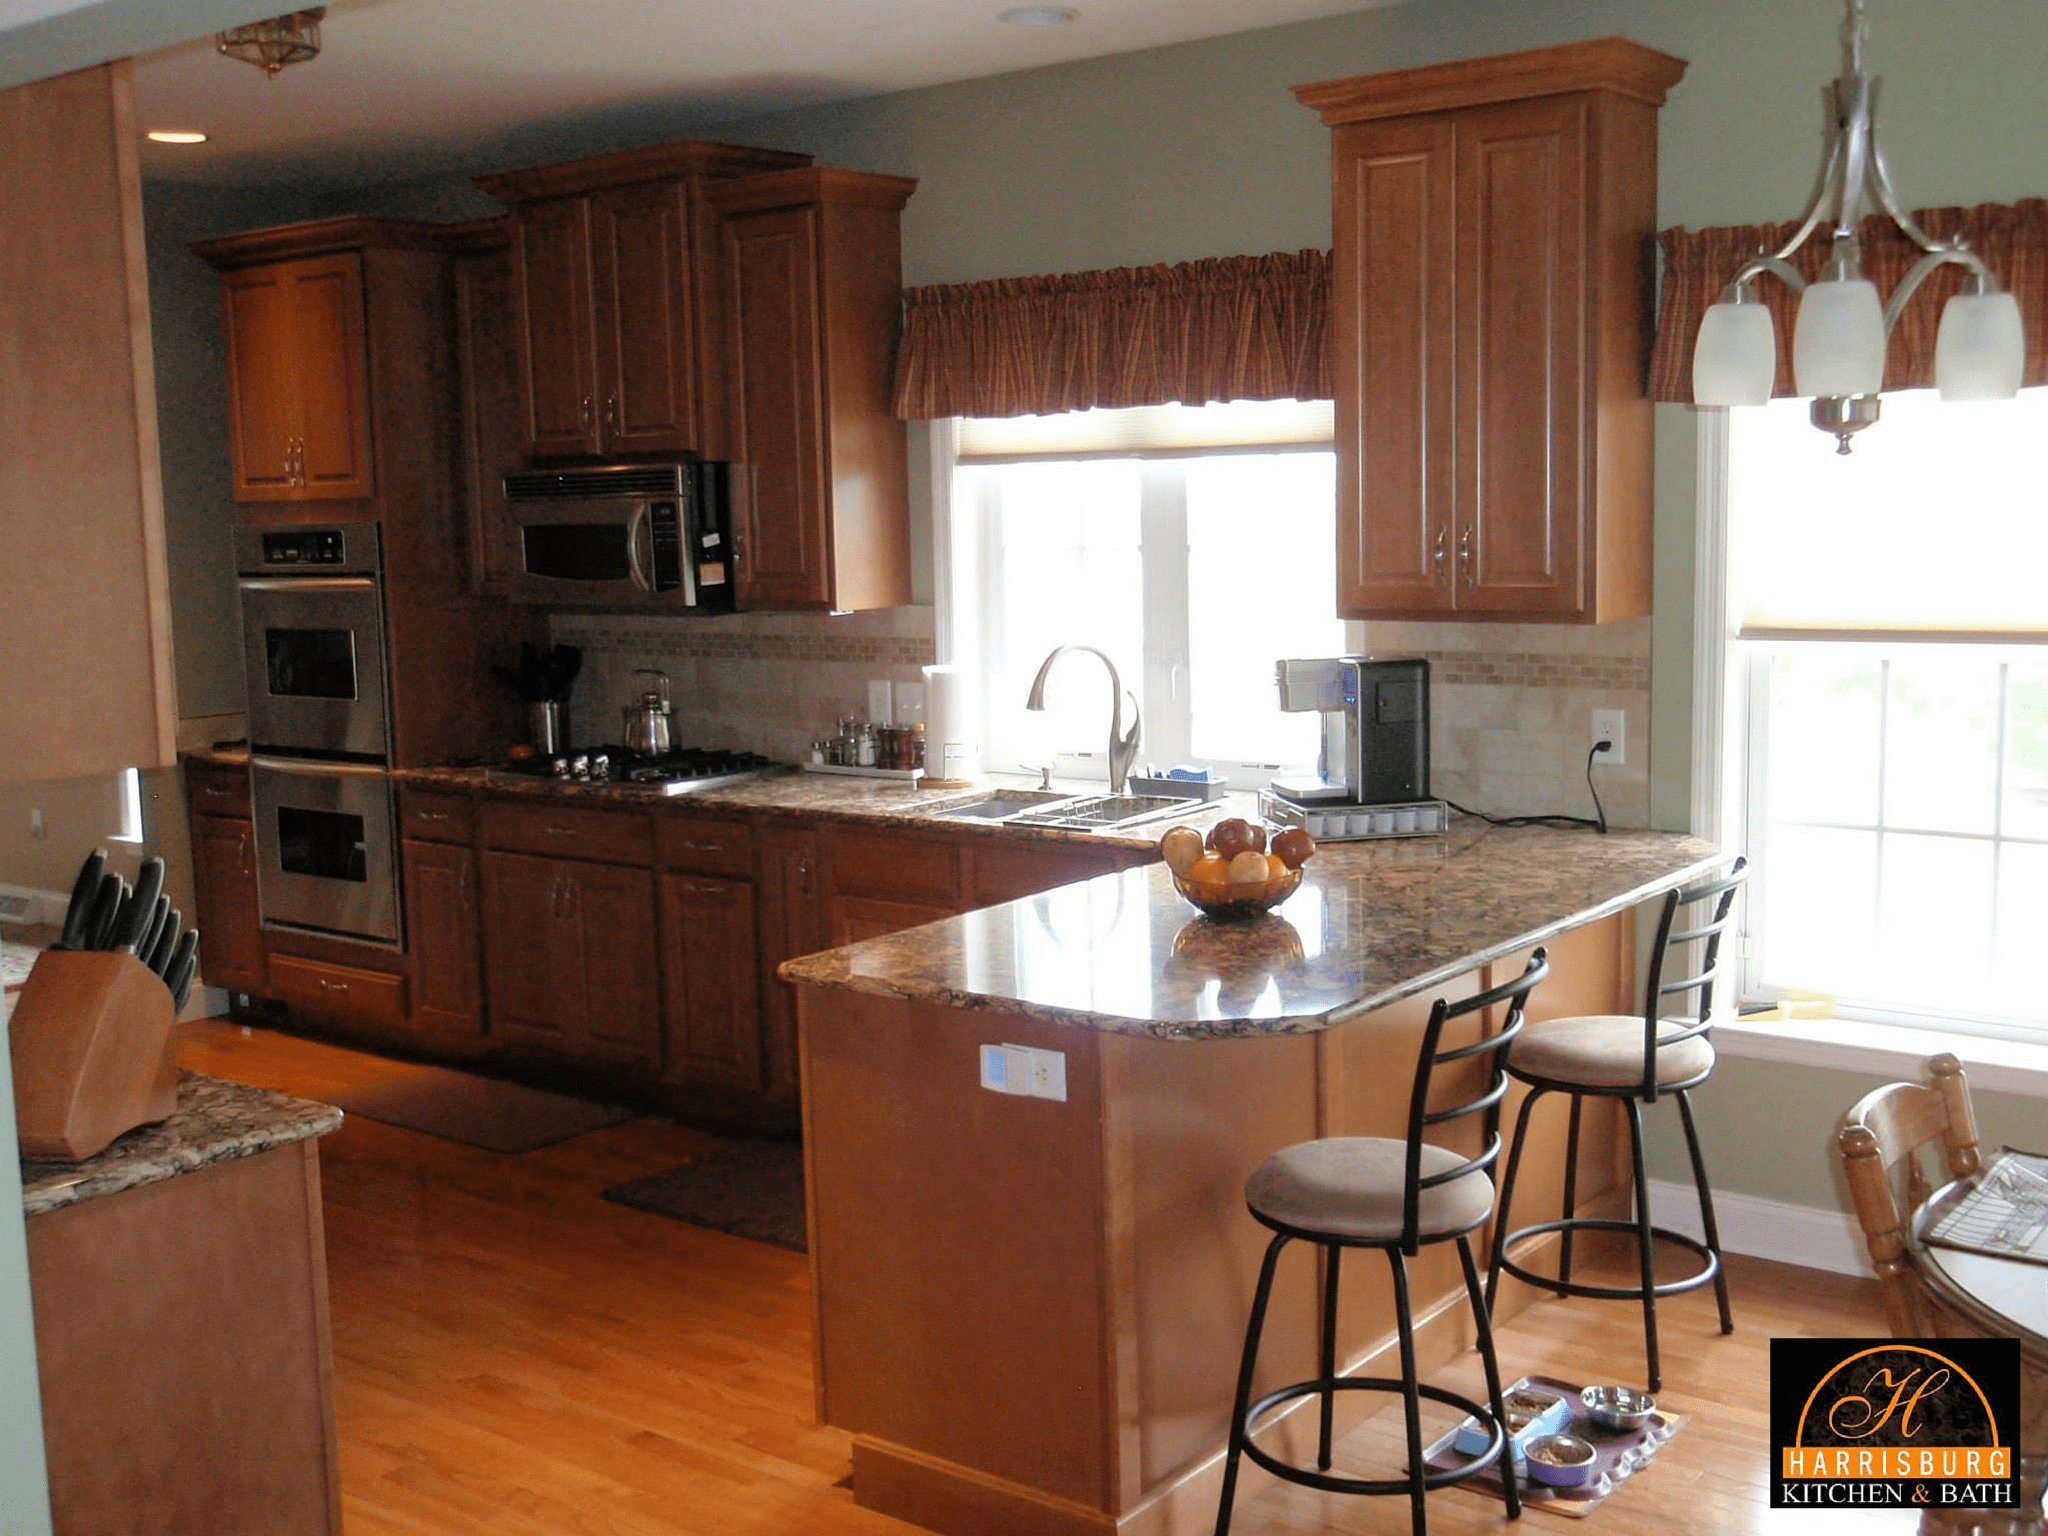 Retrofitting Kitchen for Over-the-Range Microwave